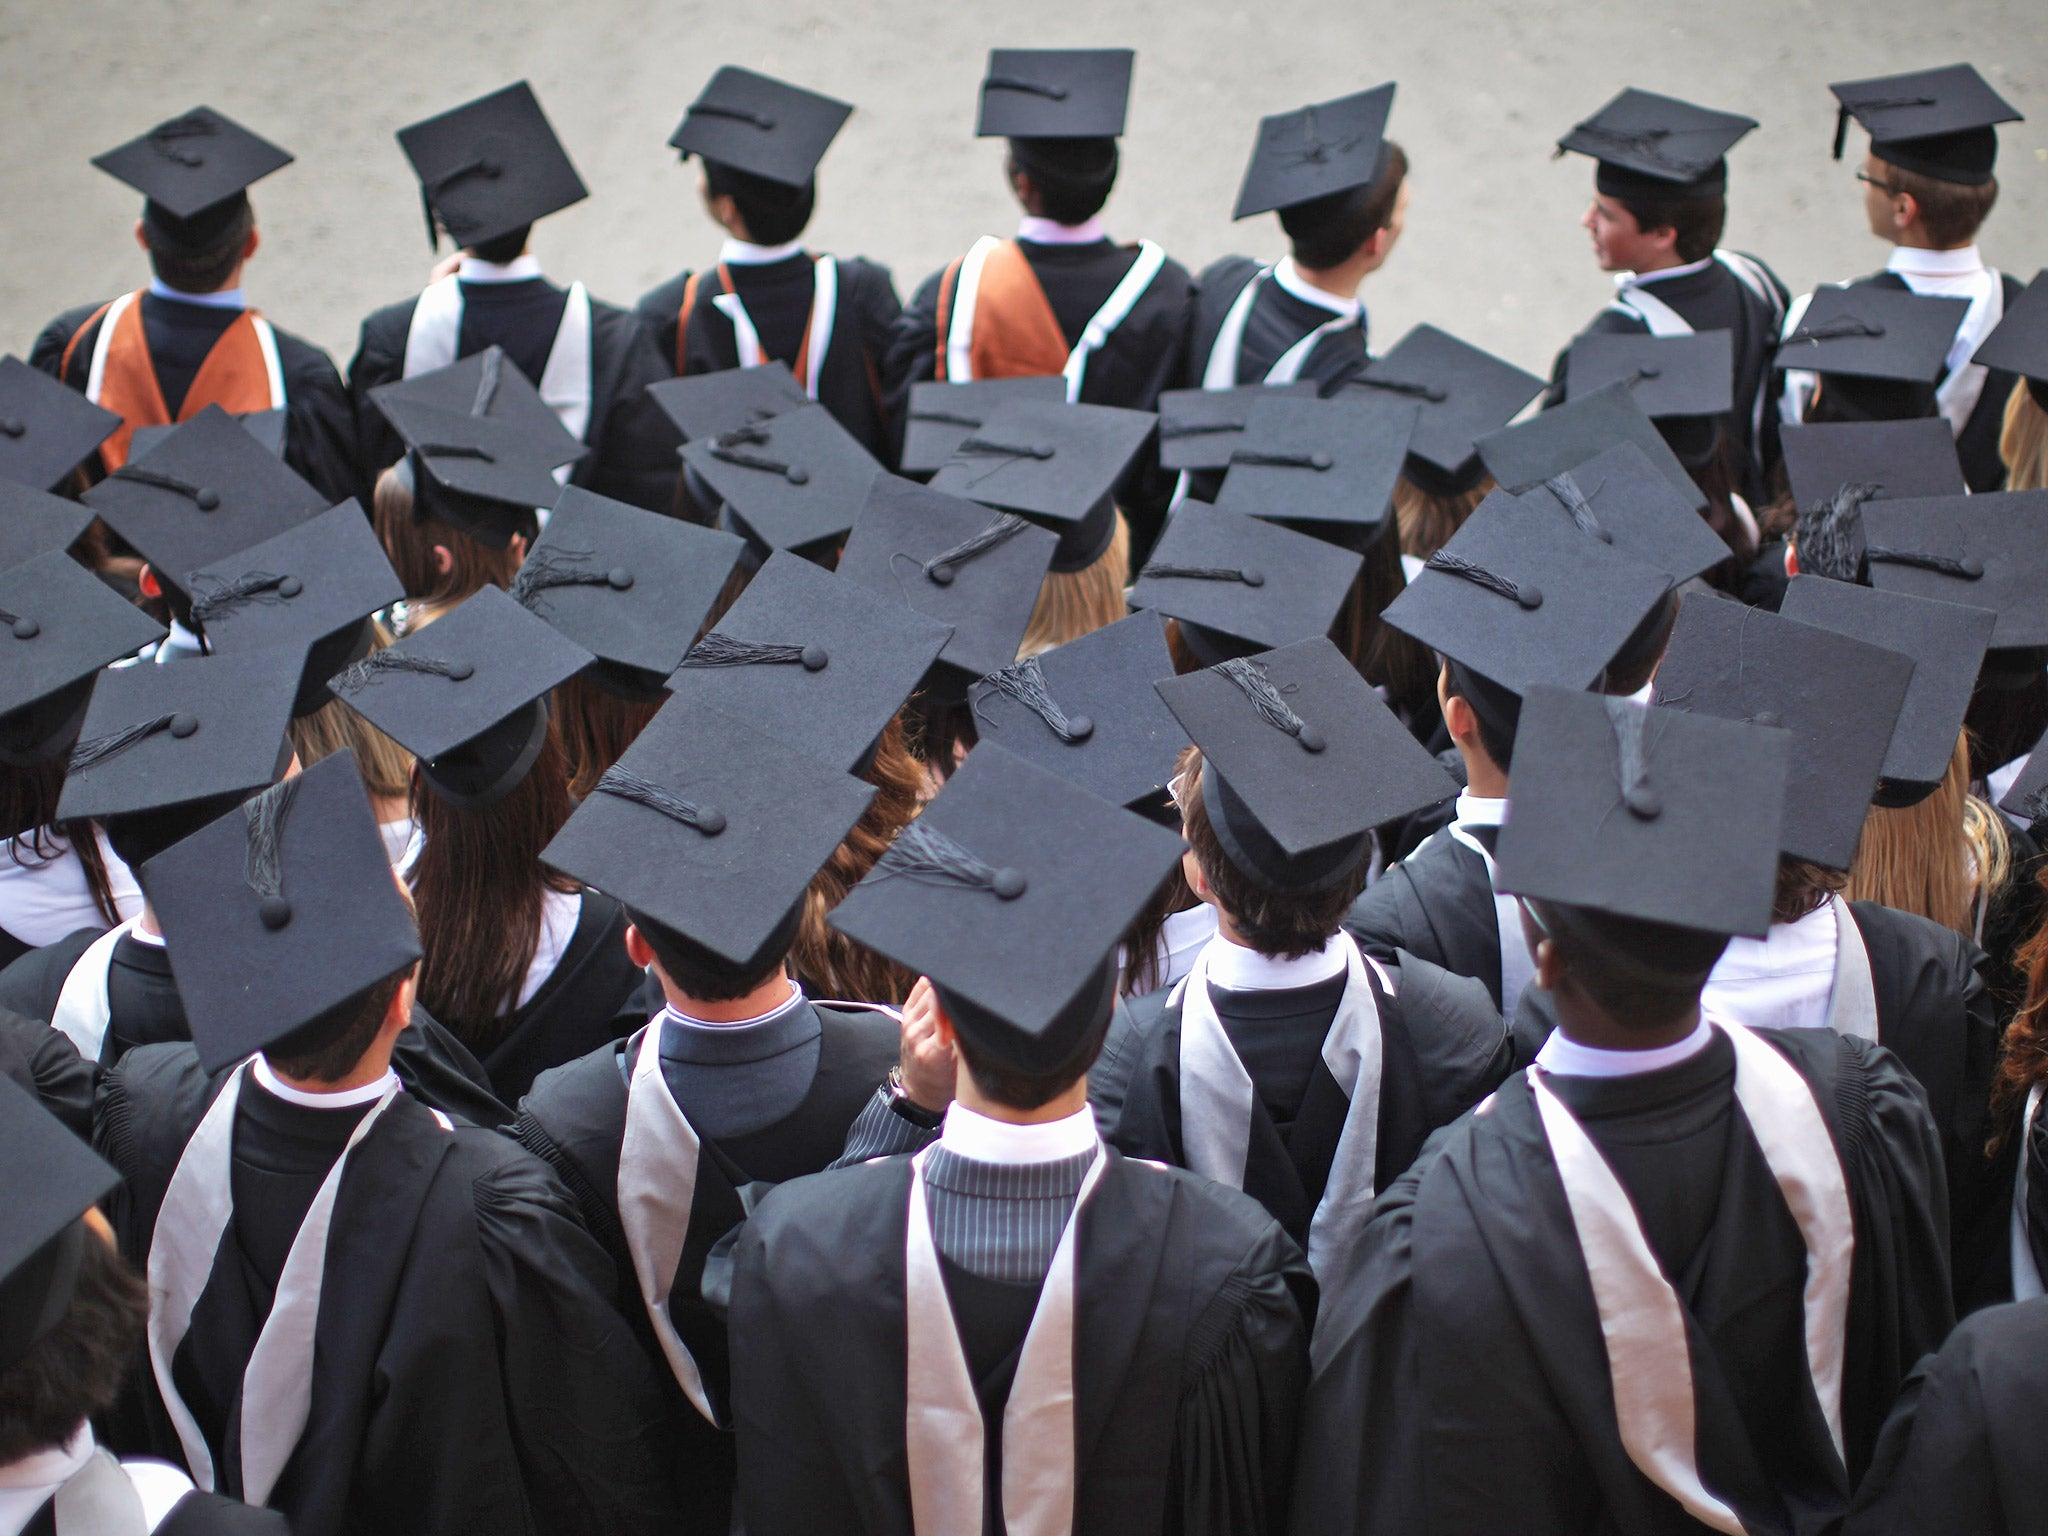 graduates from poorer backgrounds earn less than richer peers on